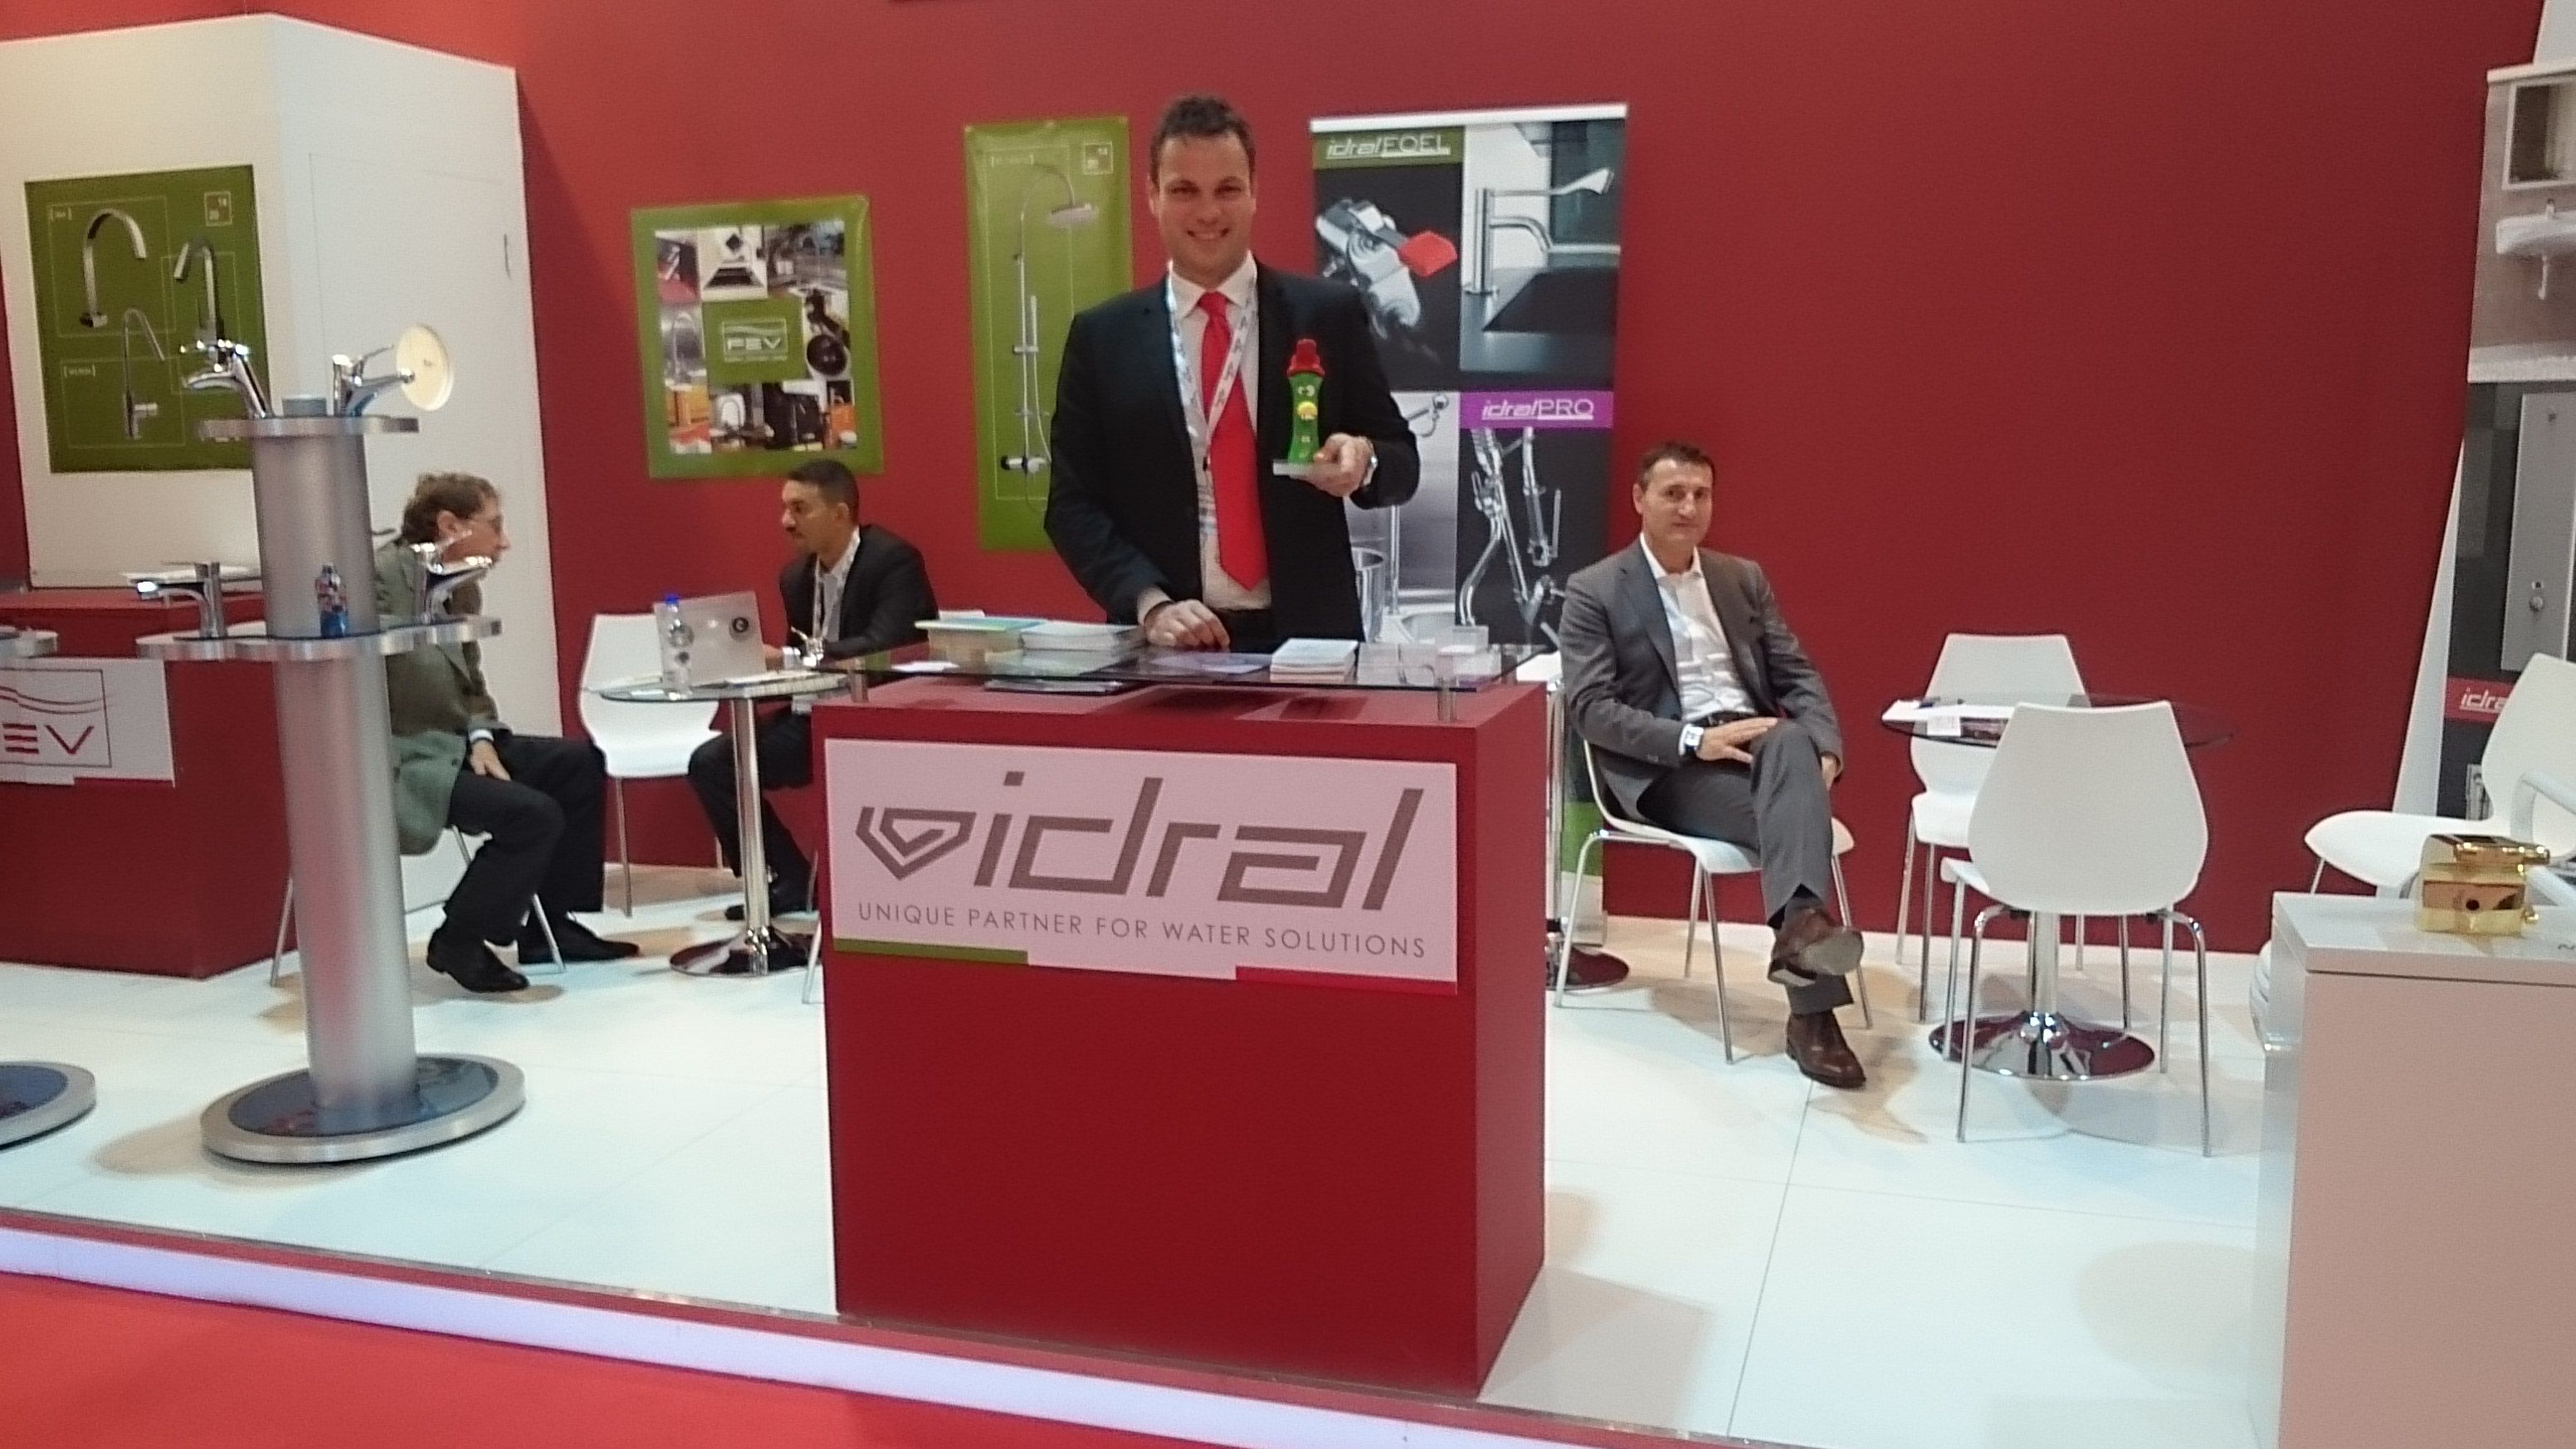 Introducing the IdralKIDS line in our stand at Big 5, International Construction & Building Show, Dubai, November 17-20 2014